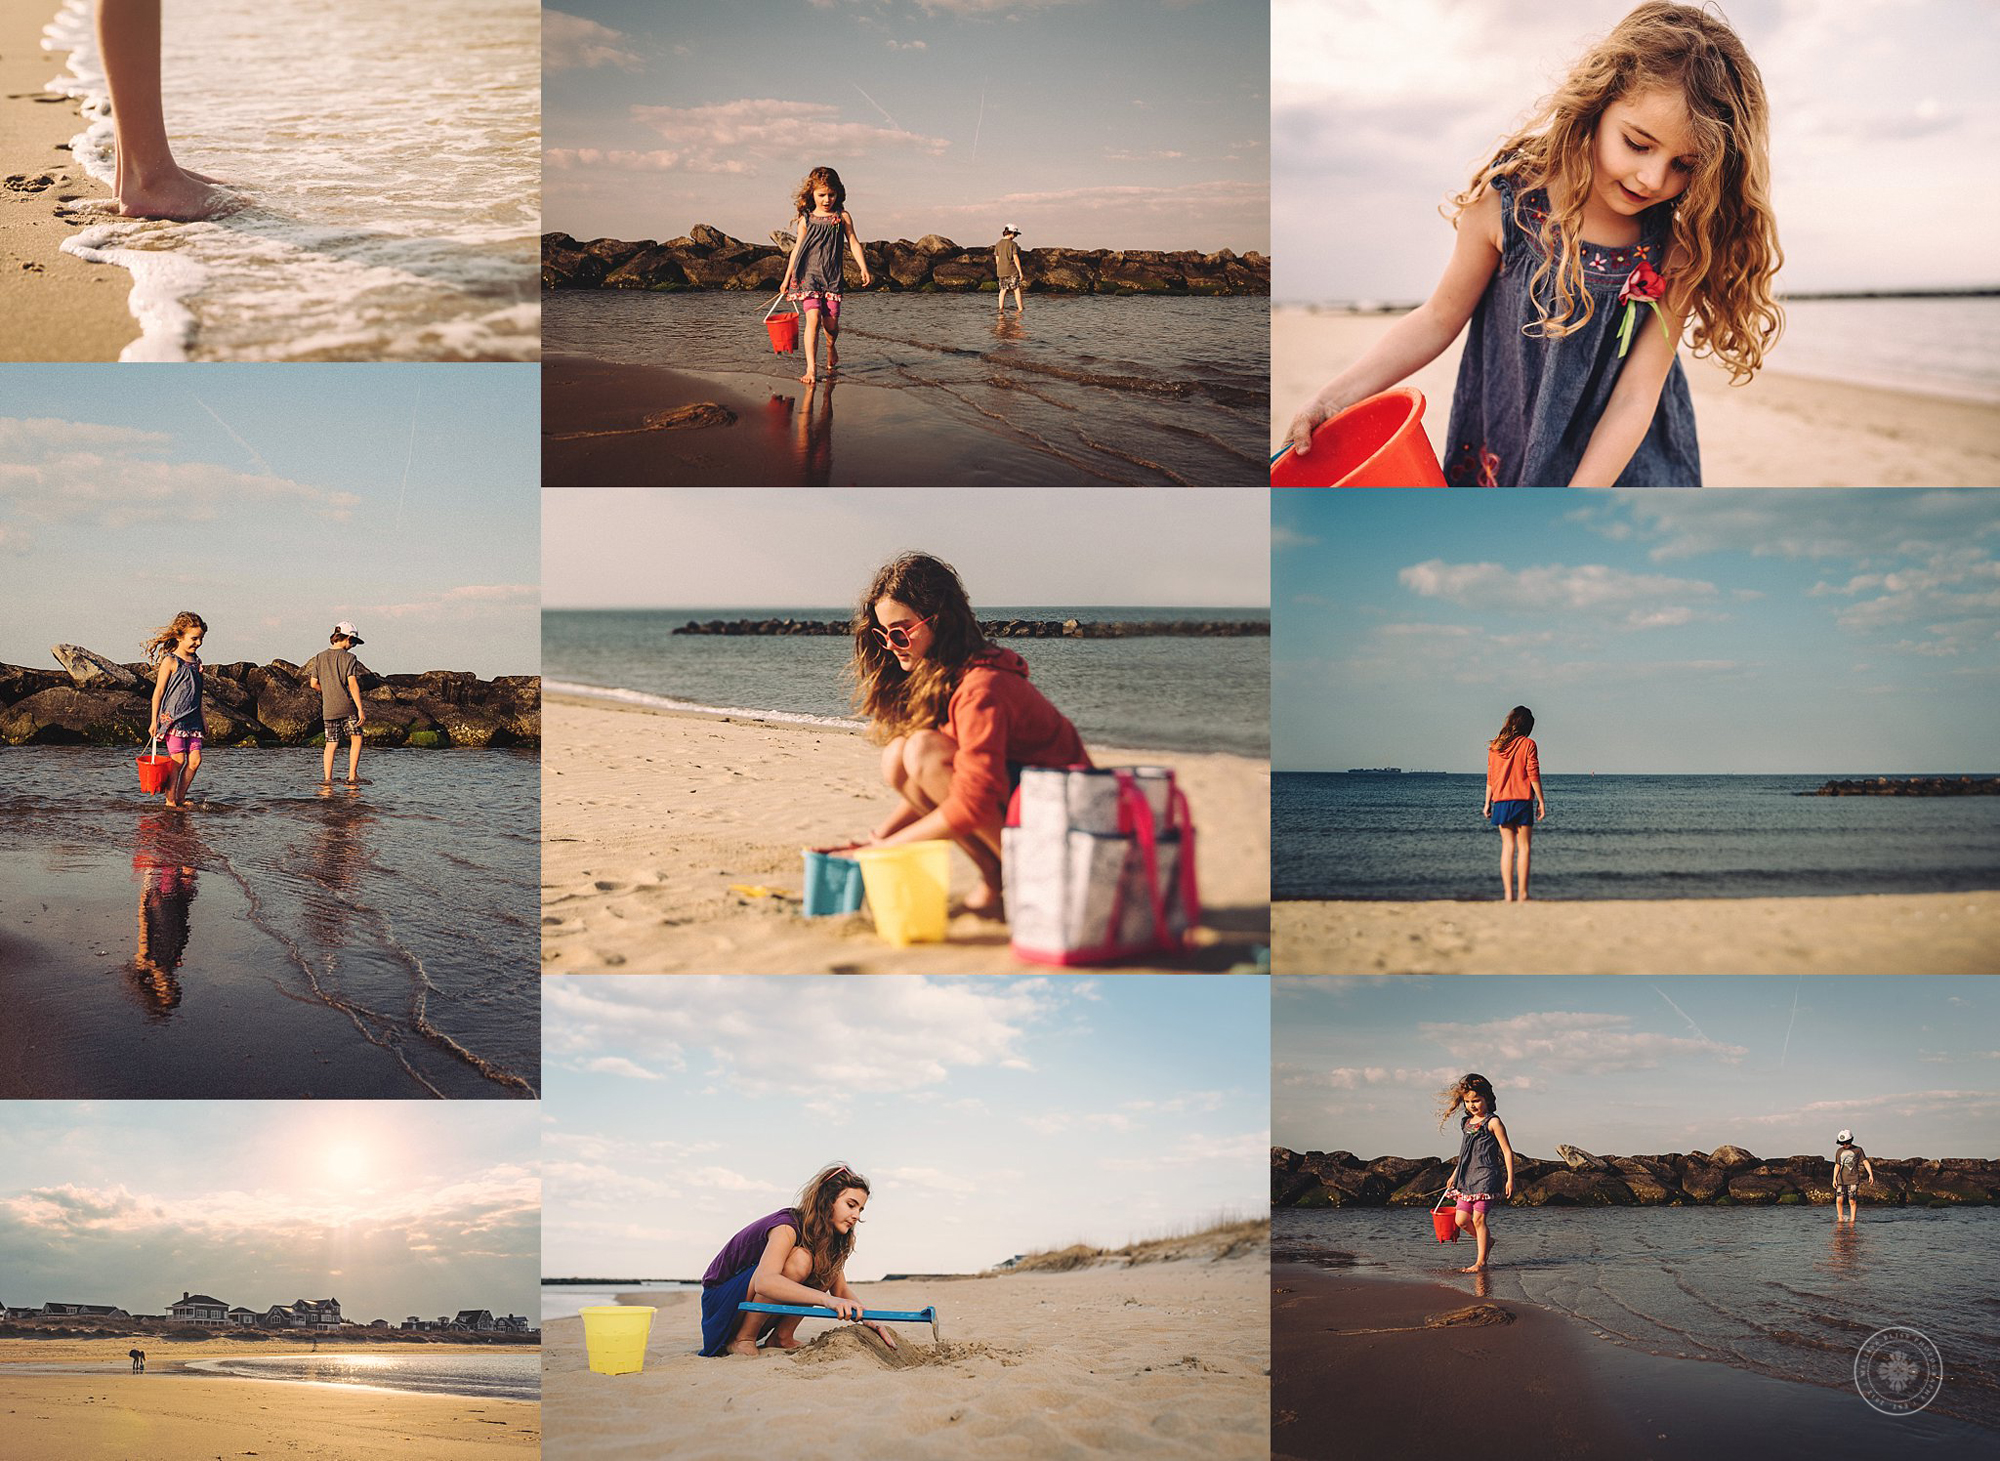 kids-on-the-beach-digging-in-sand-melissa-bliss-photography-virginia-beach